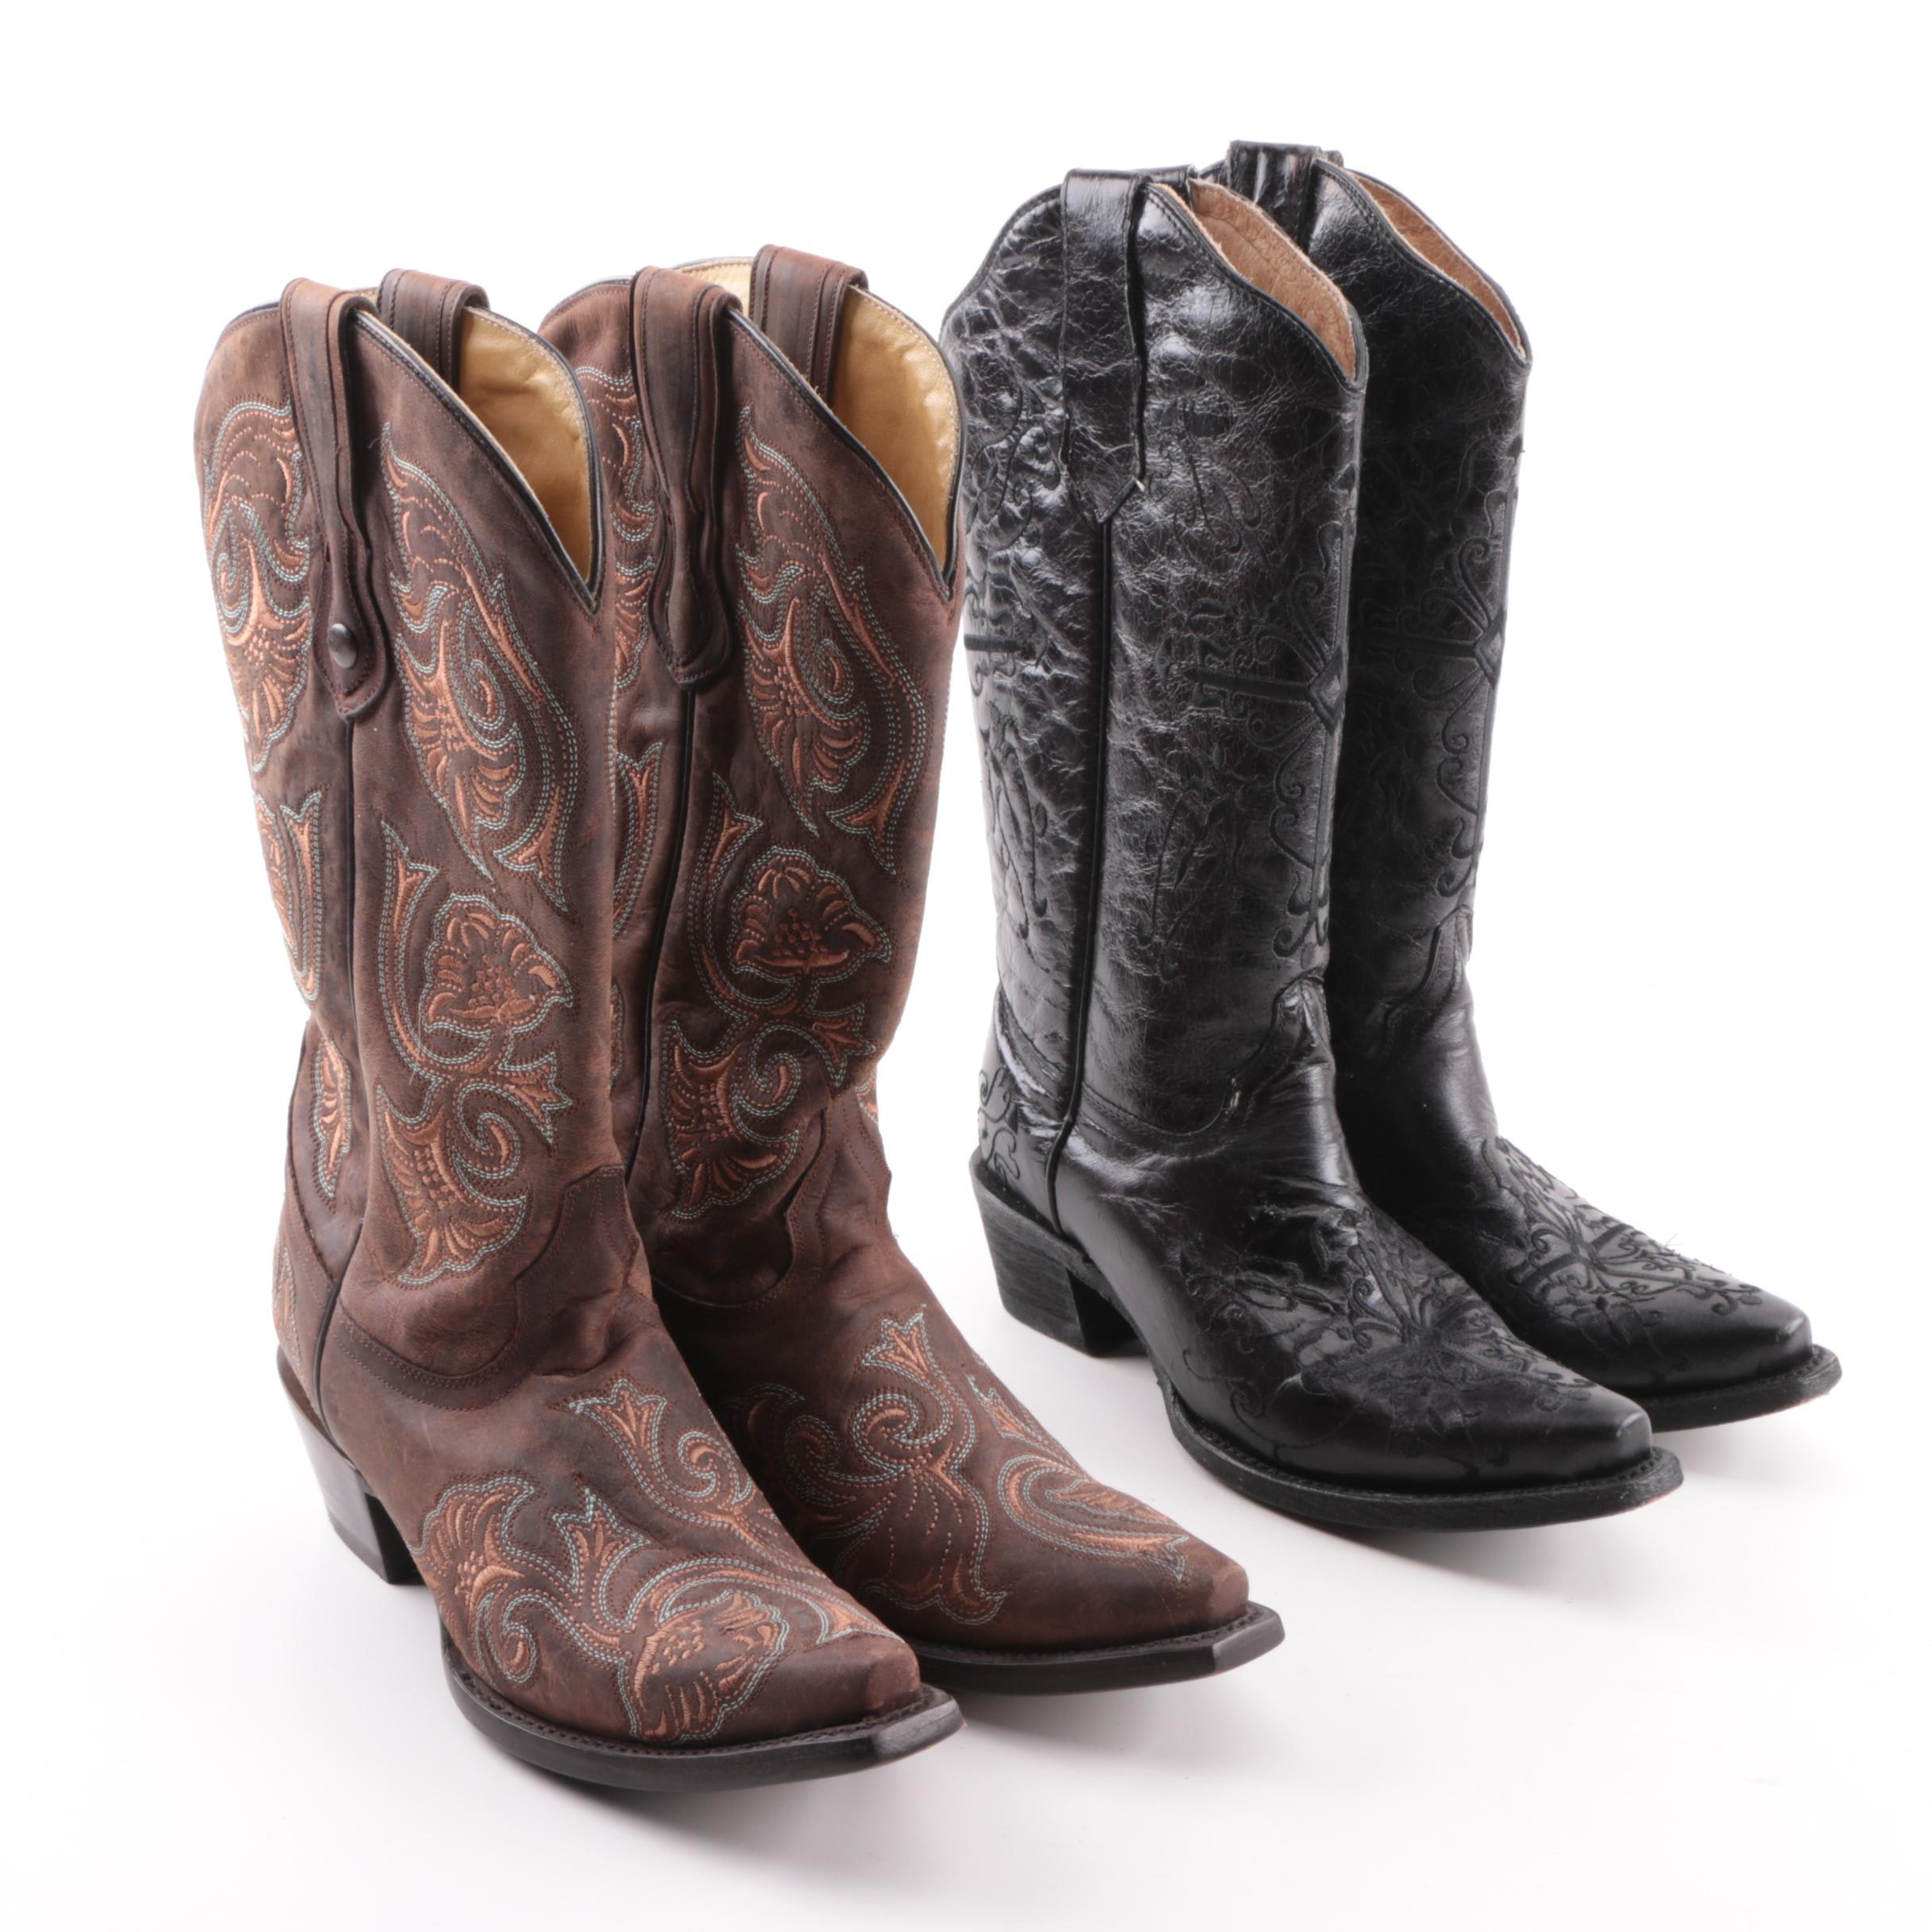 Women's Corral and Circle G Leather Western Boots